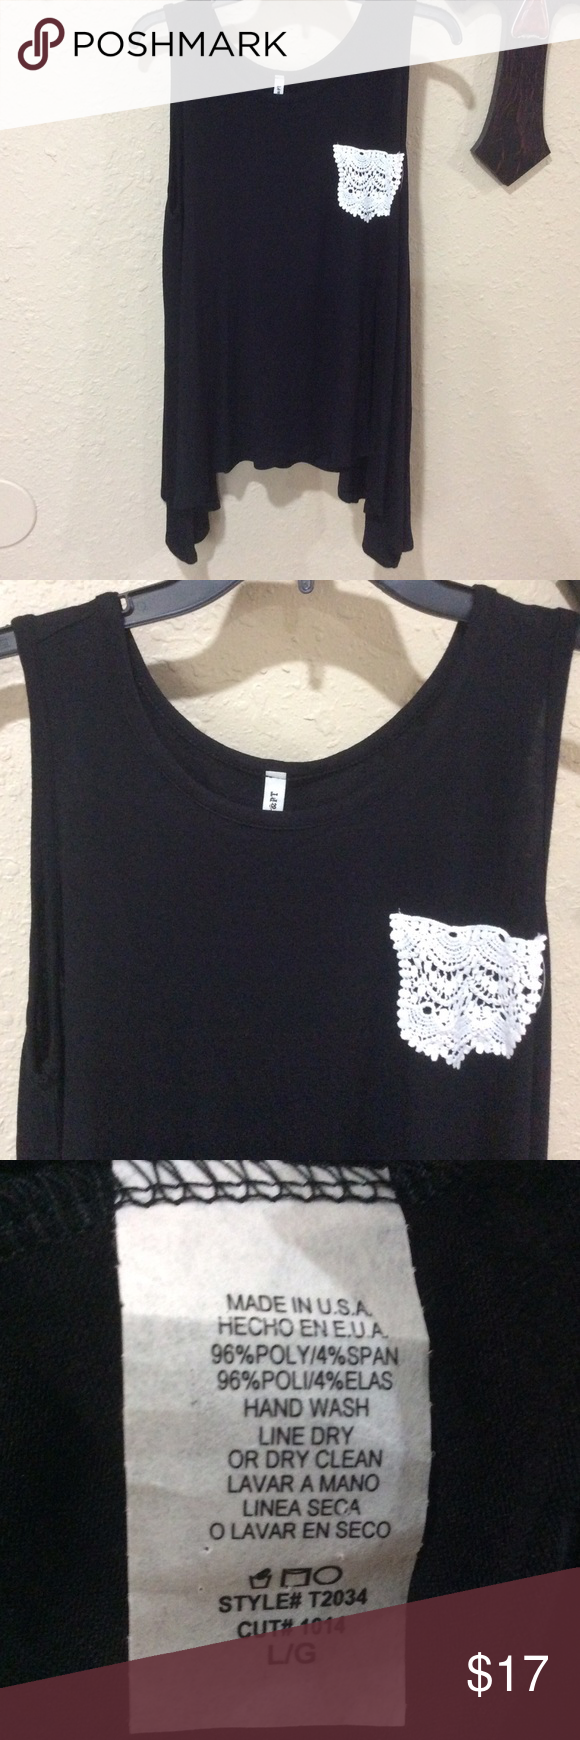 Black and white pocket tank This is a new, with tags attached, boutique style black tank with knit white pocket. Fast shipping from a smoke free home. Offers and questions welcome. Thank you for looking. Tops Tank Tops